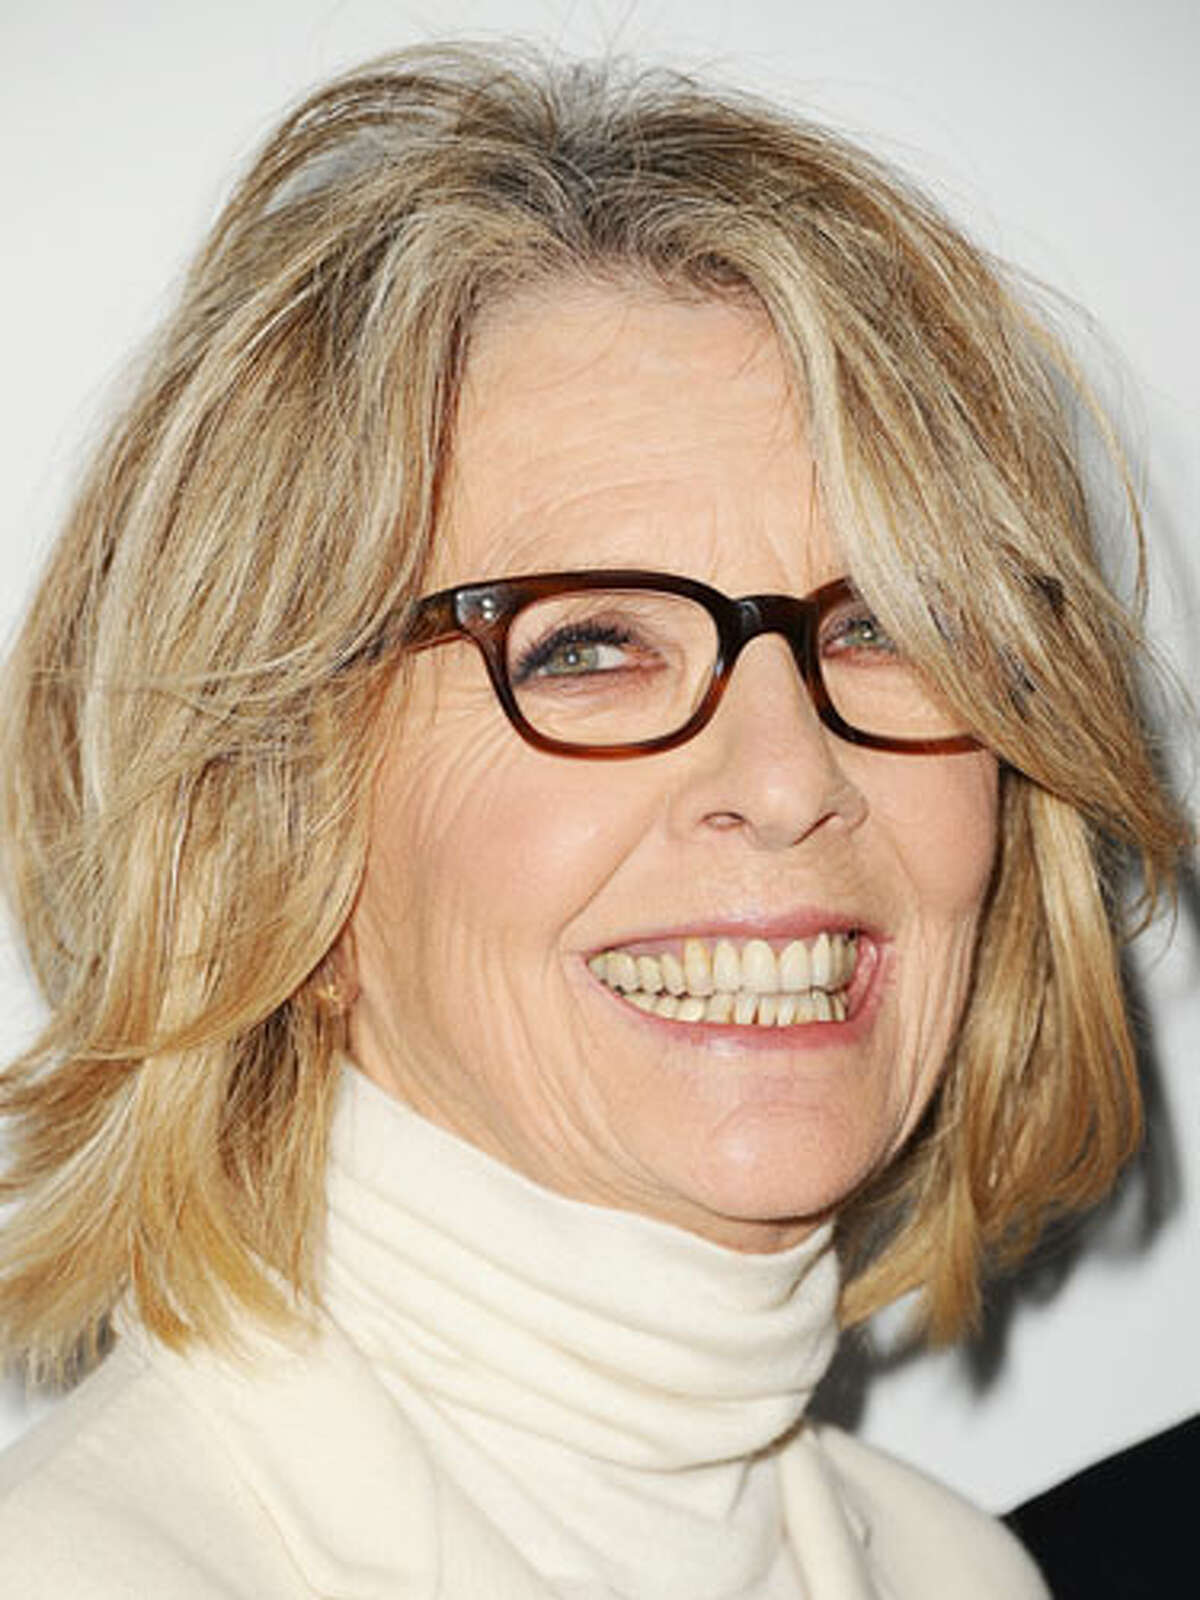 Diane Keaton's Layered Bob Lots of flirty layers keep Keaton's style fresh and full of movement; face-framing fringe also offers a fun complement to her bold specs. Ask for a layered bob that falls just below the jaw line and includes shorter fringes around the face and side-swept bangs. To style, use a round brush to flip ends out as you blow dry. 16 Celebs Who Look Better With Age10 Biggest Hair Care MythsHaircuts That Take Off 10 Years15 Slimming Superfoods To Try in 201310 Ways To Build Your Sexual Confidence